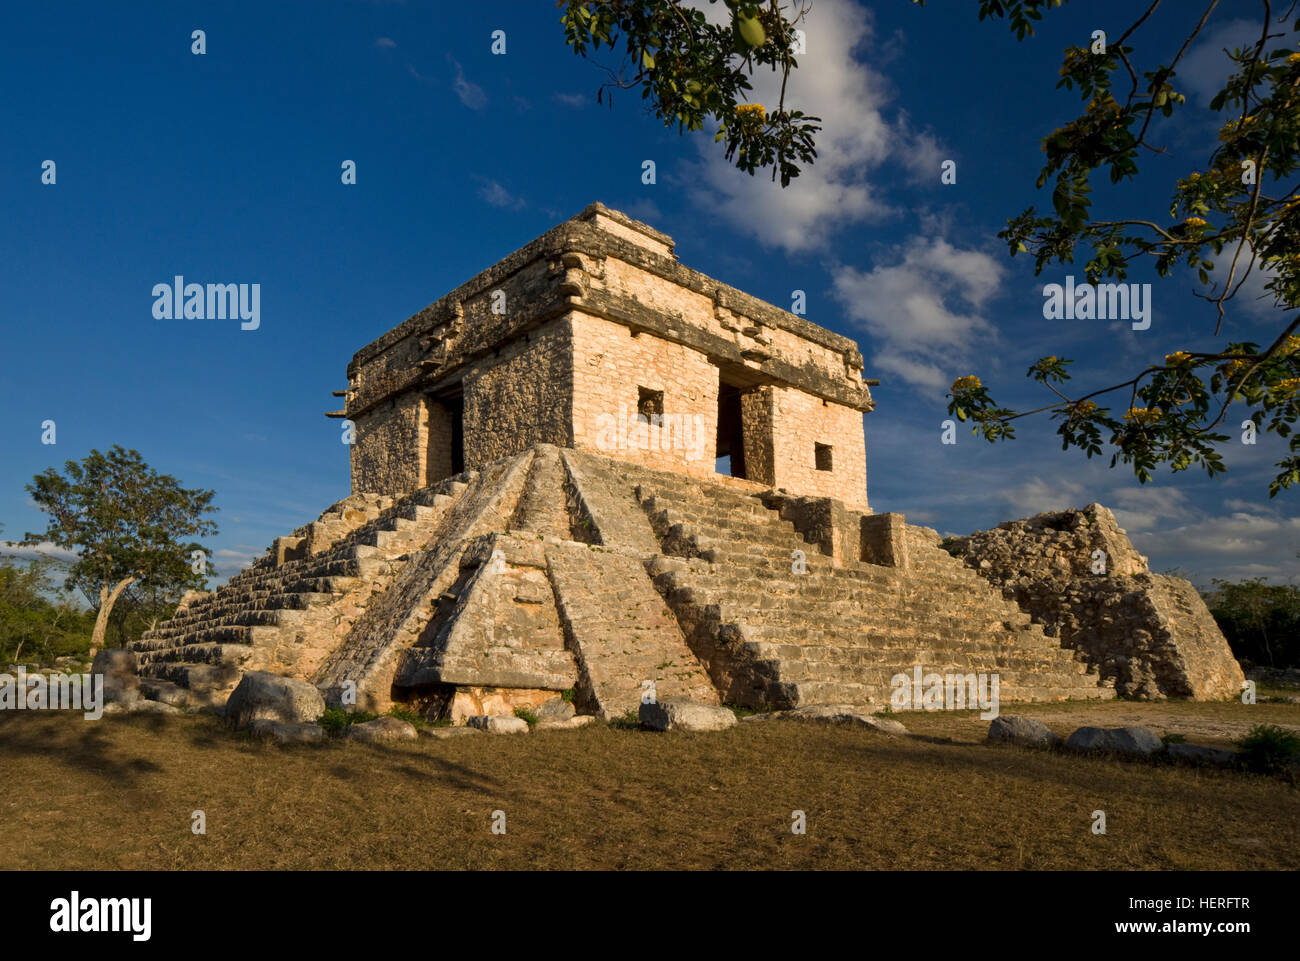 Observatory, Temple of the Seven Dolls, Maya ruins, Dzibilchaltún, Mérida, Yucatán, Mexico - Stock Image